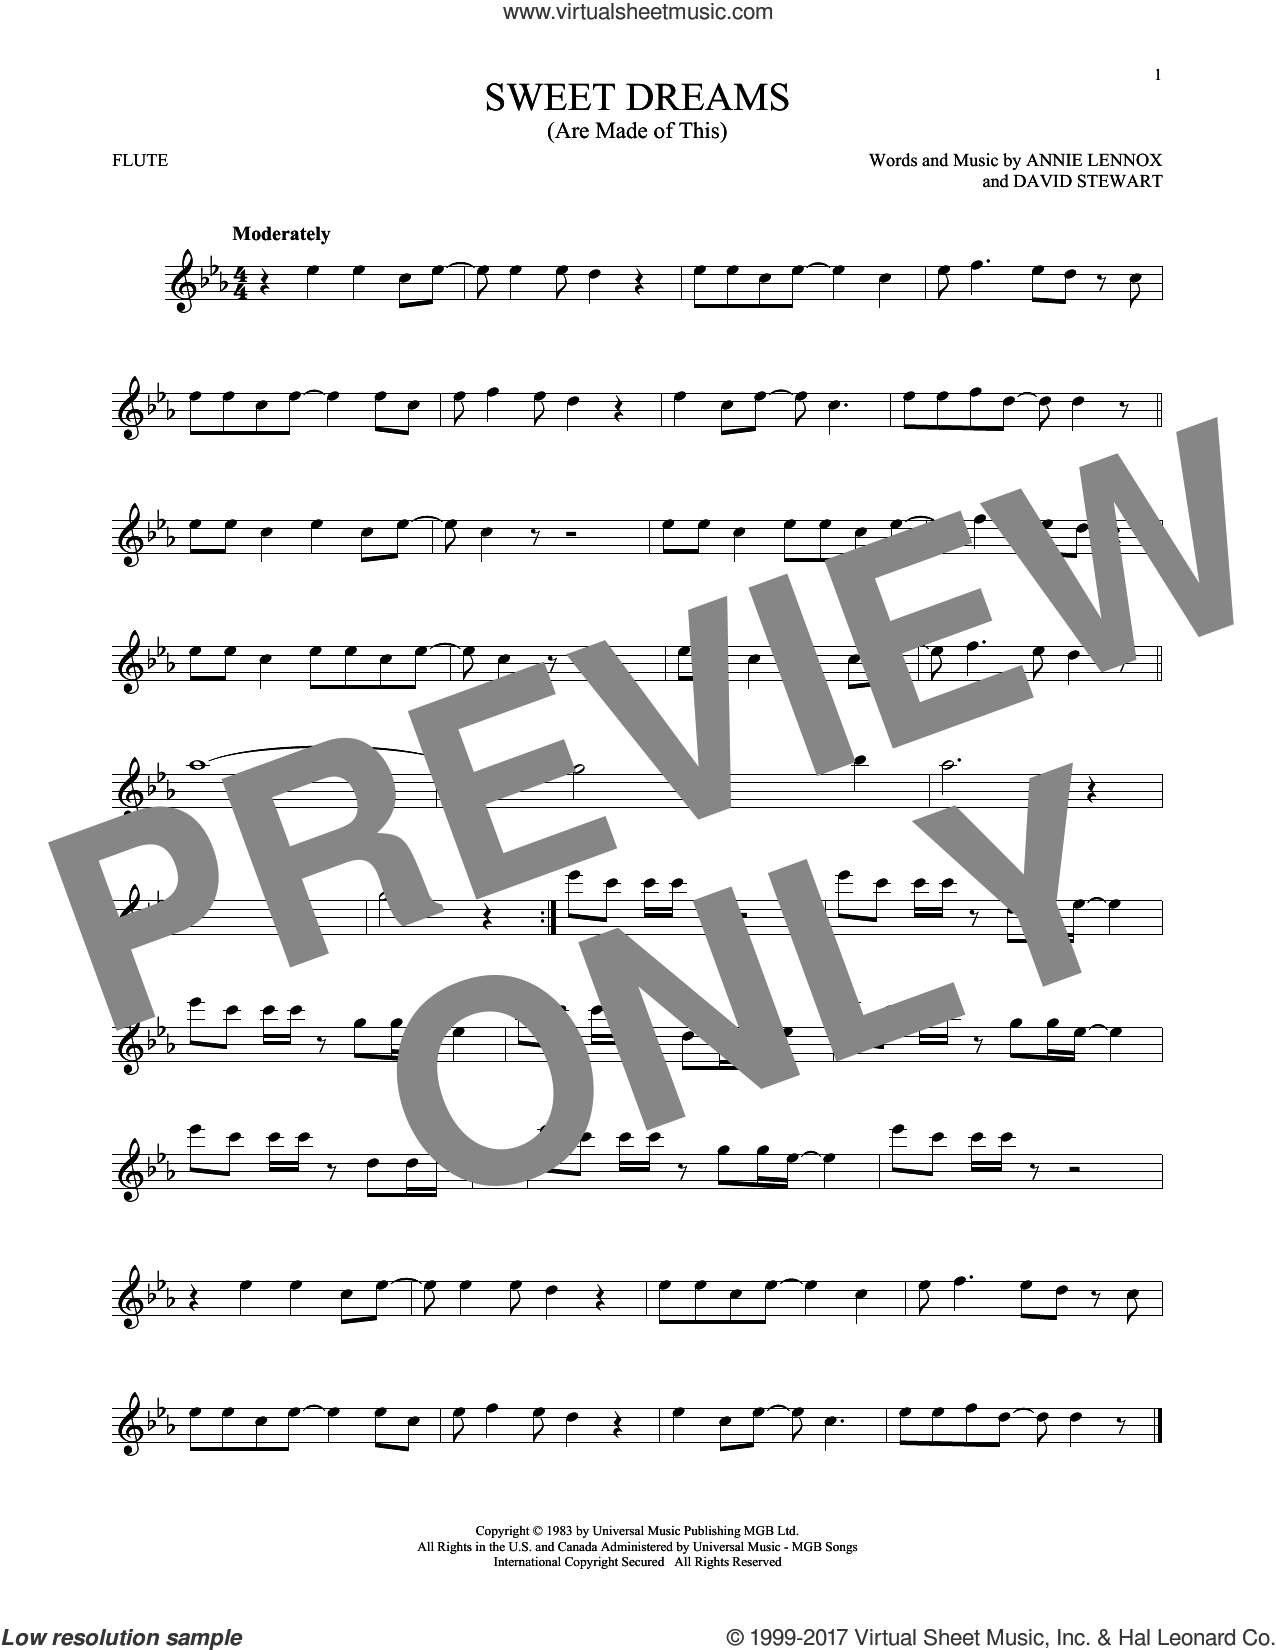 Sweet Dreams (Are Made Of This) sheet music for flute solo by Eurythmics, Annie Lennox and Dave Stewart, intermediate skill level